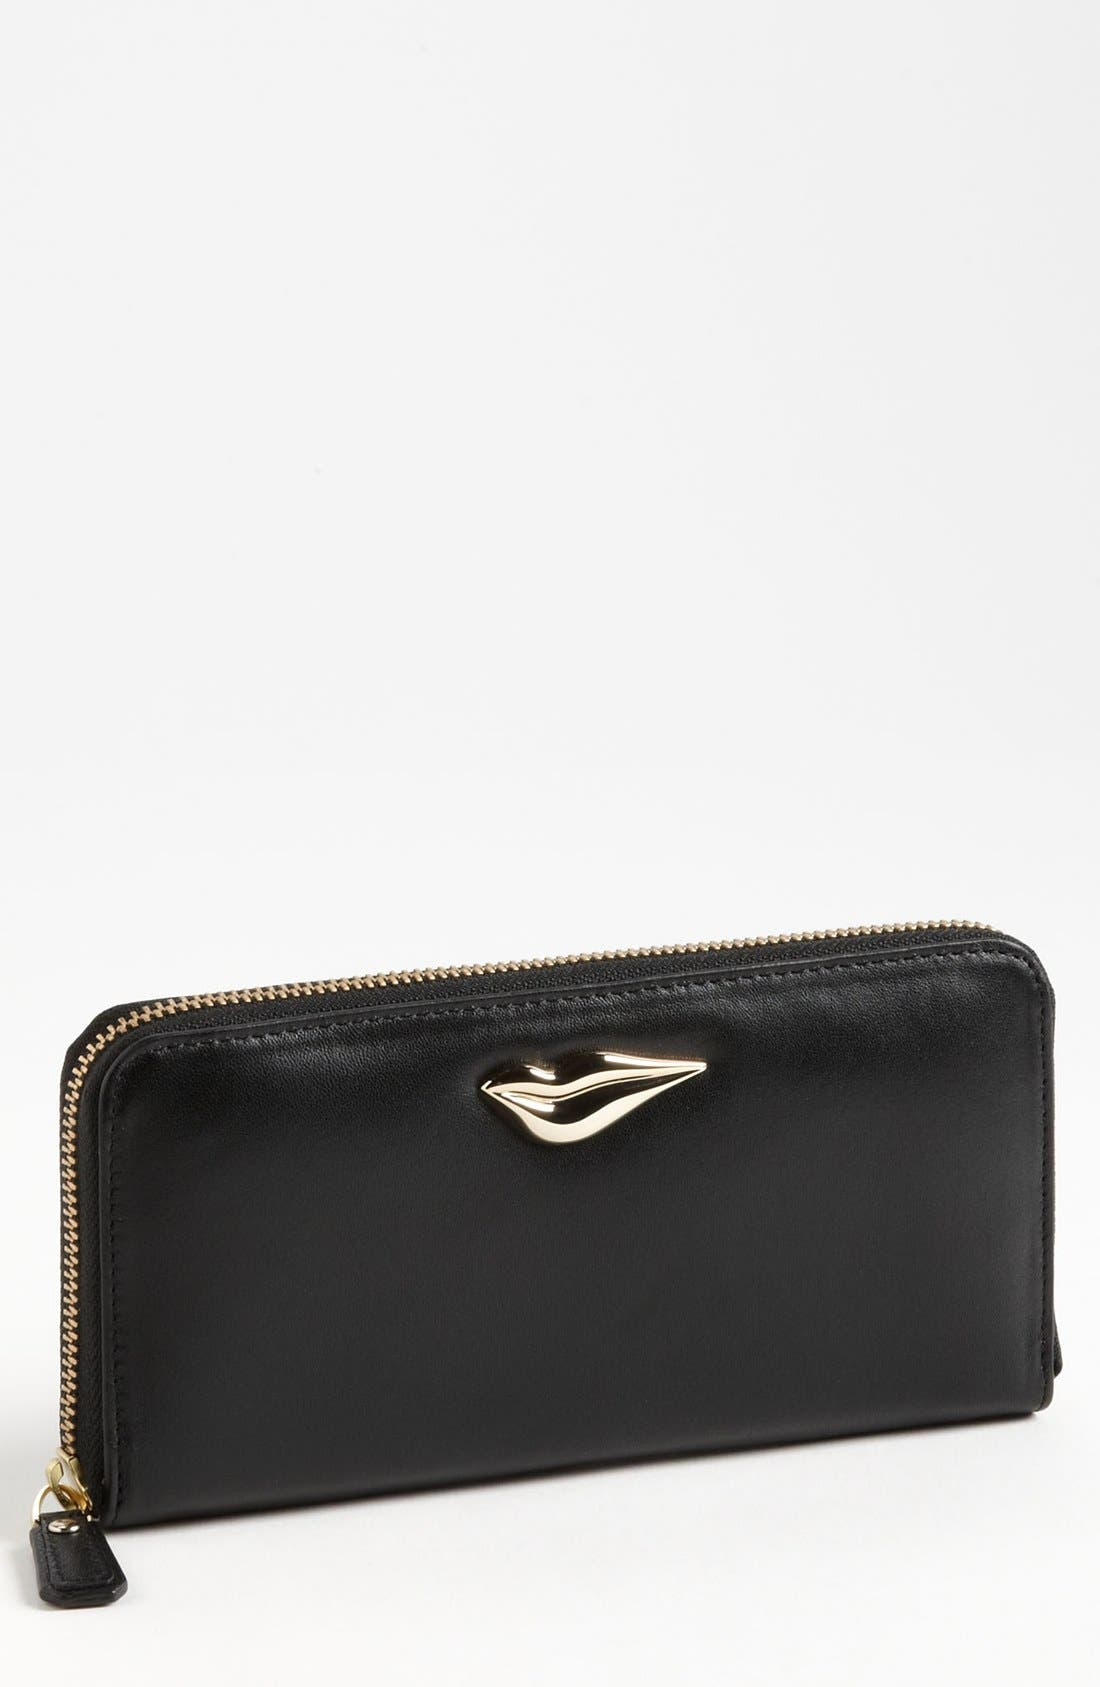 Main Image - Diane von Furstenberg 'Lips' Leather Wallet